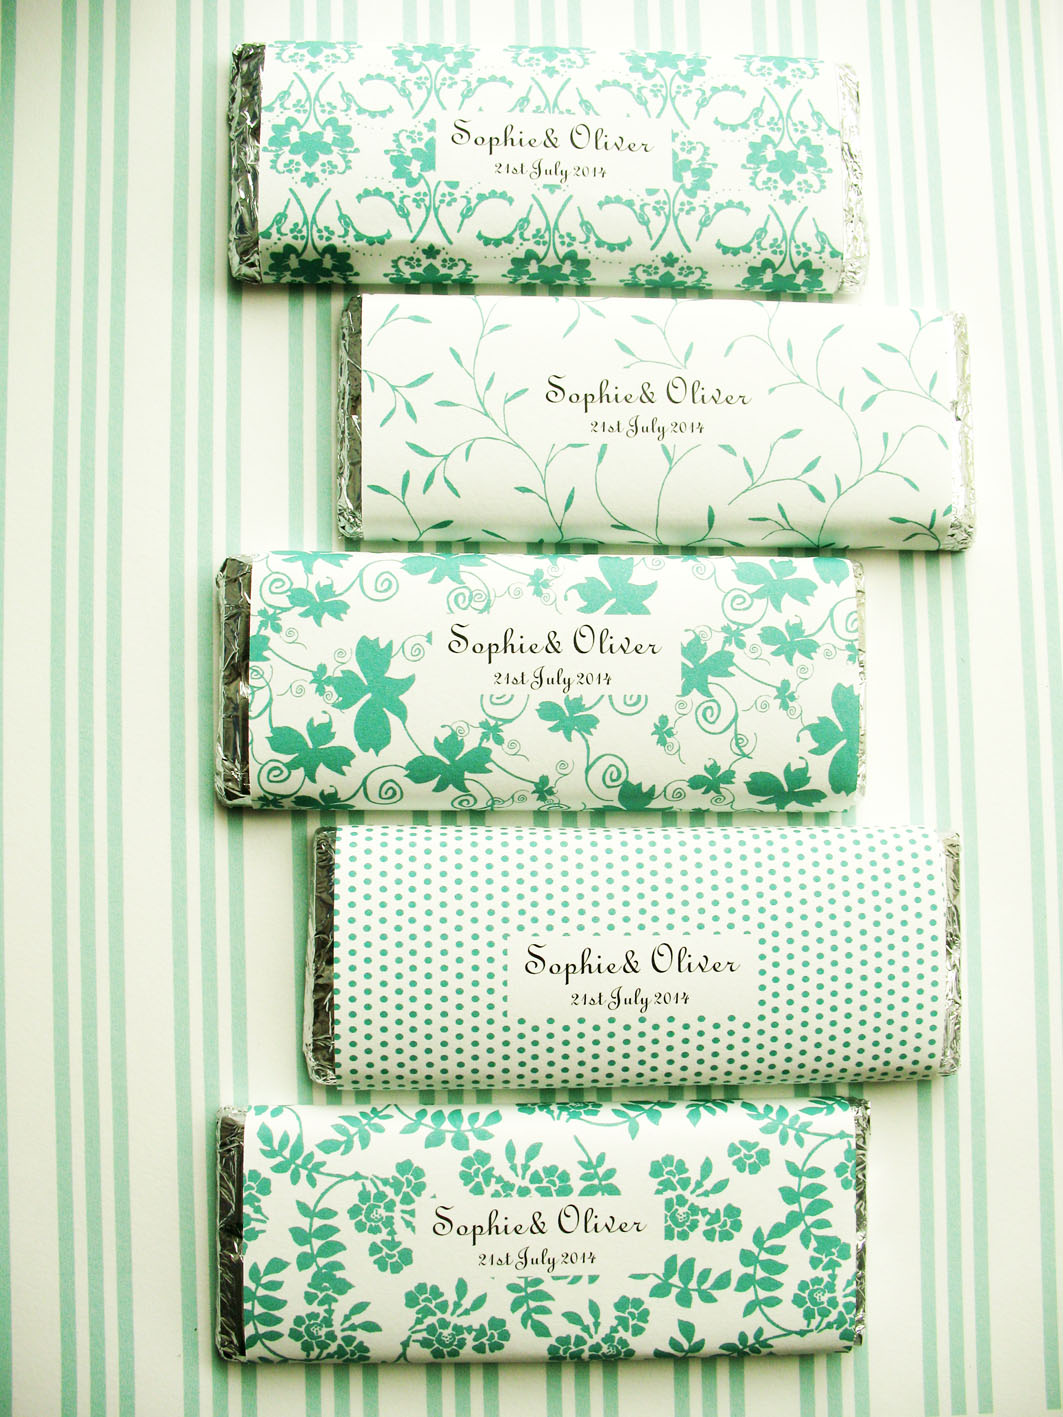 Inspiration for weddings invitations and stationery Personalised